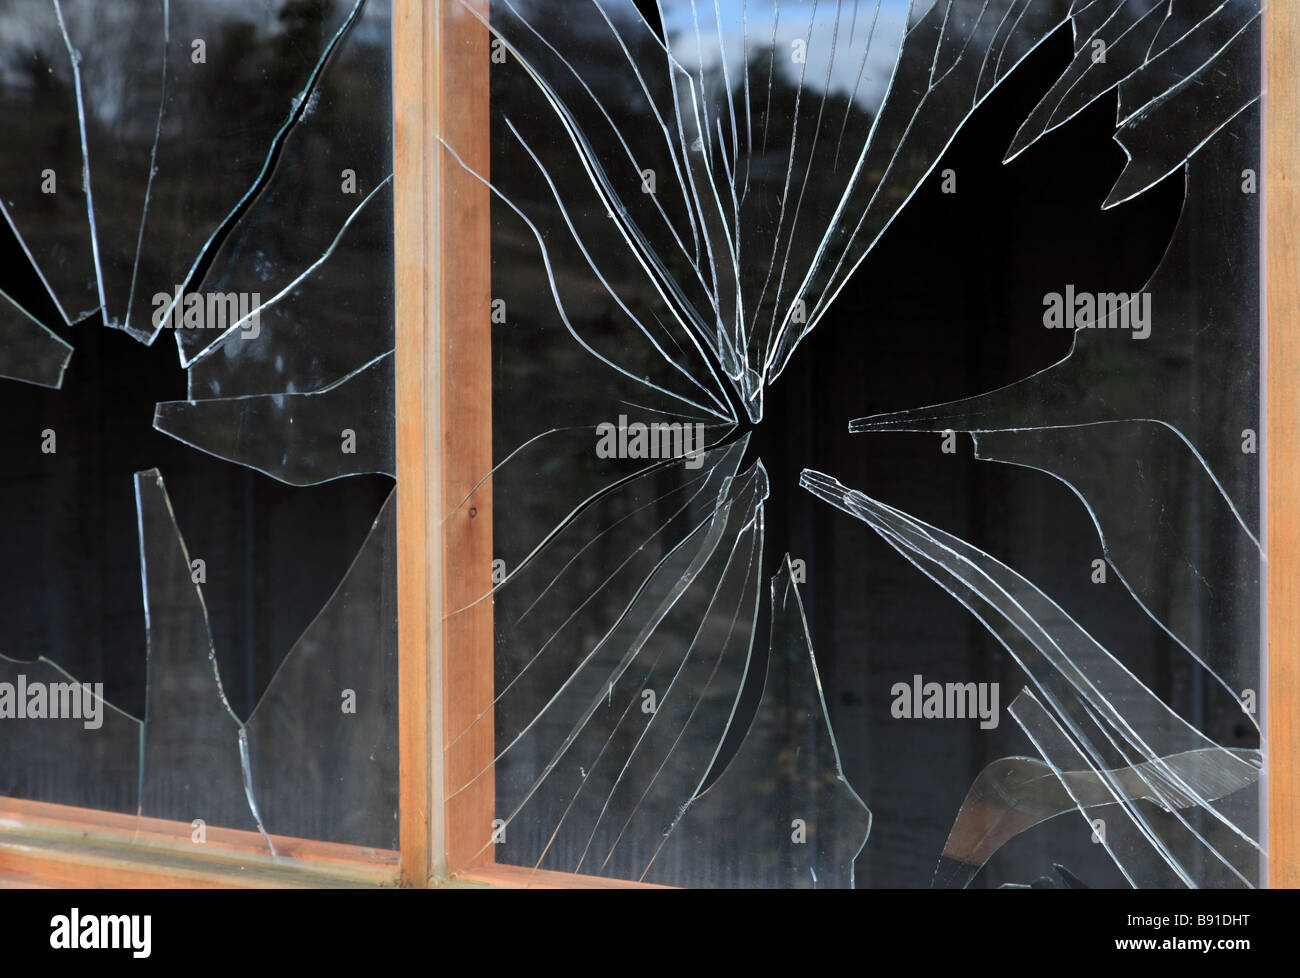 Smashed windows. - Stock Image